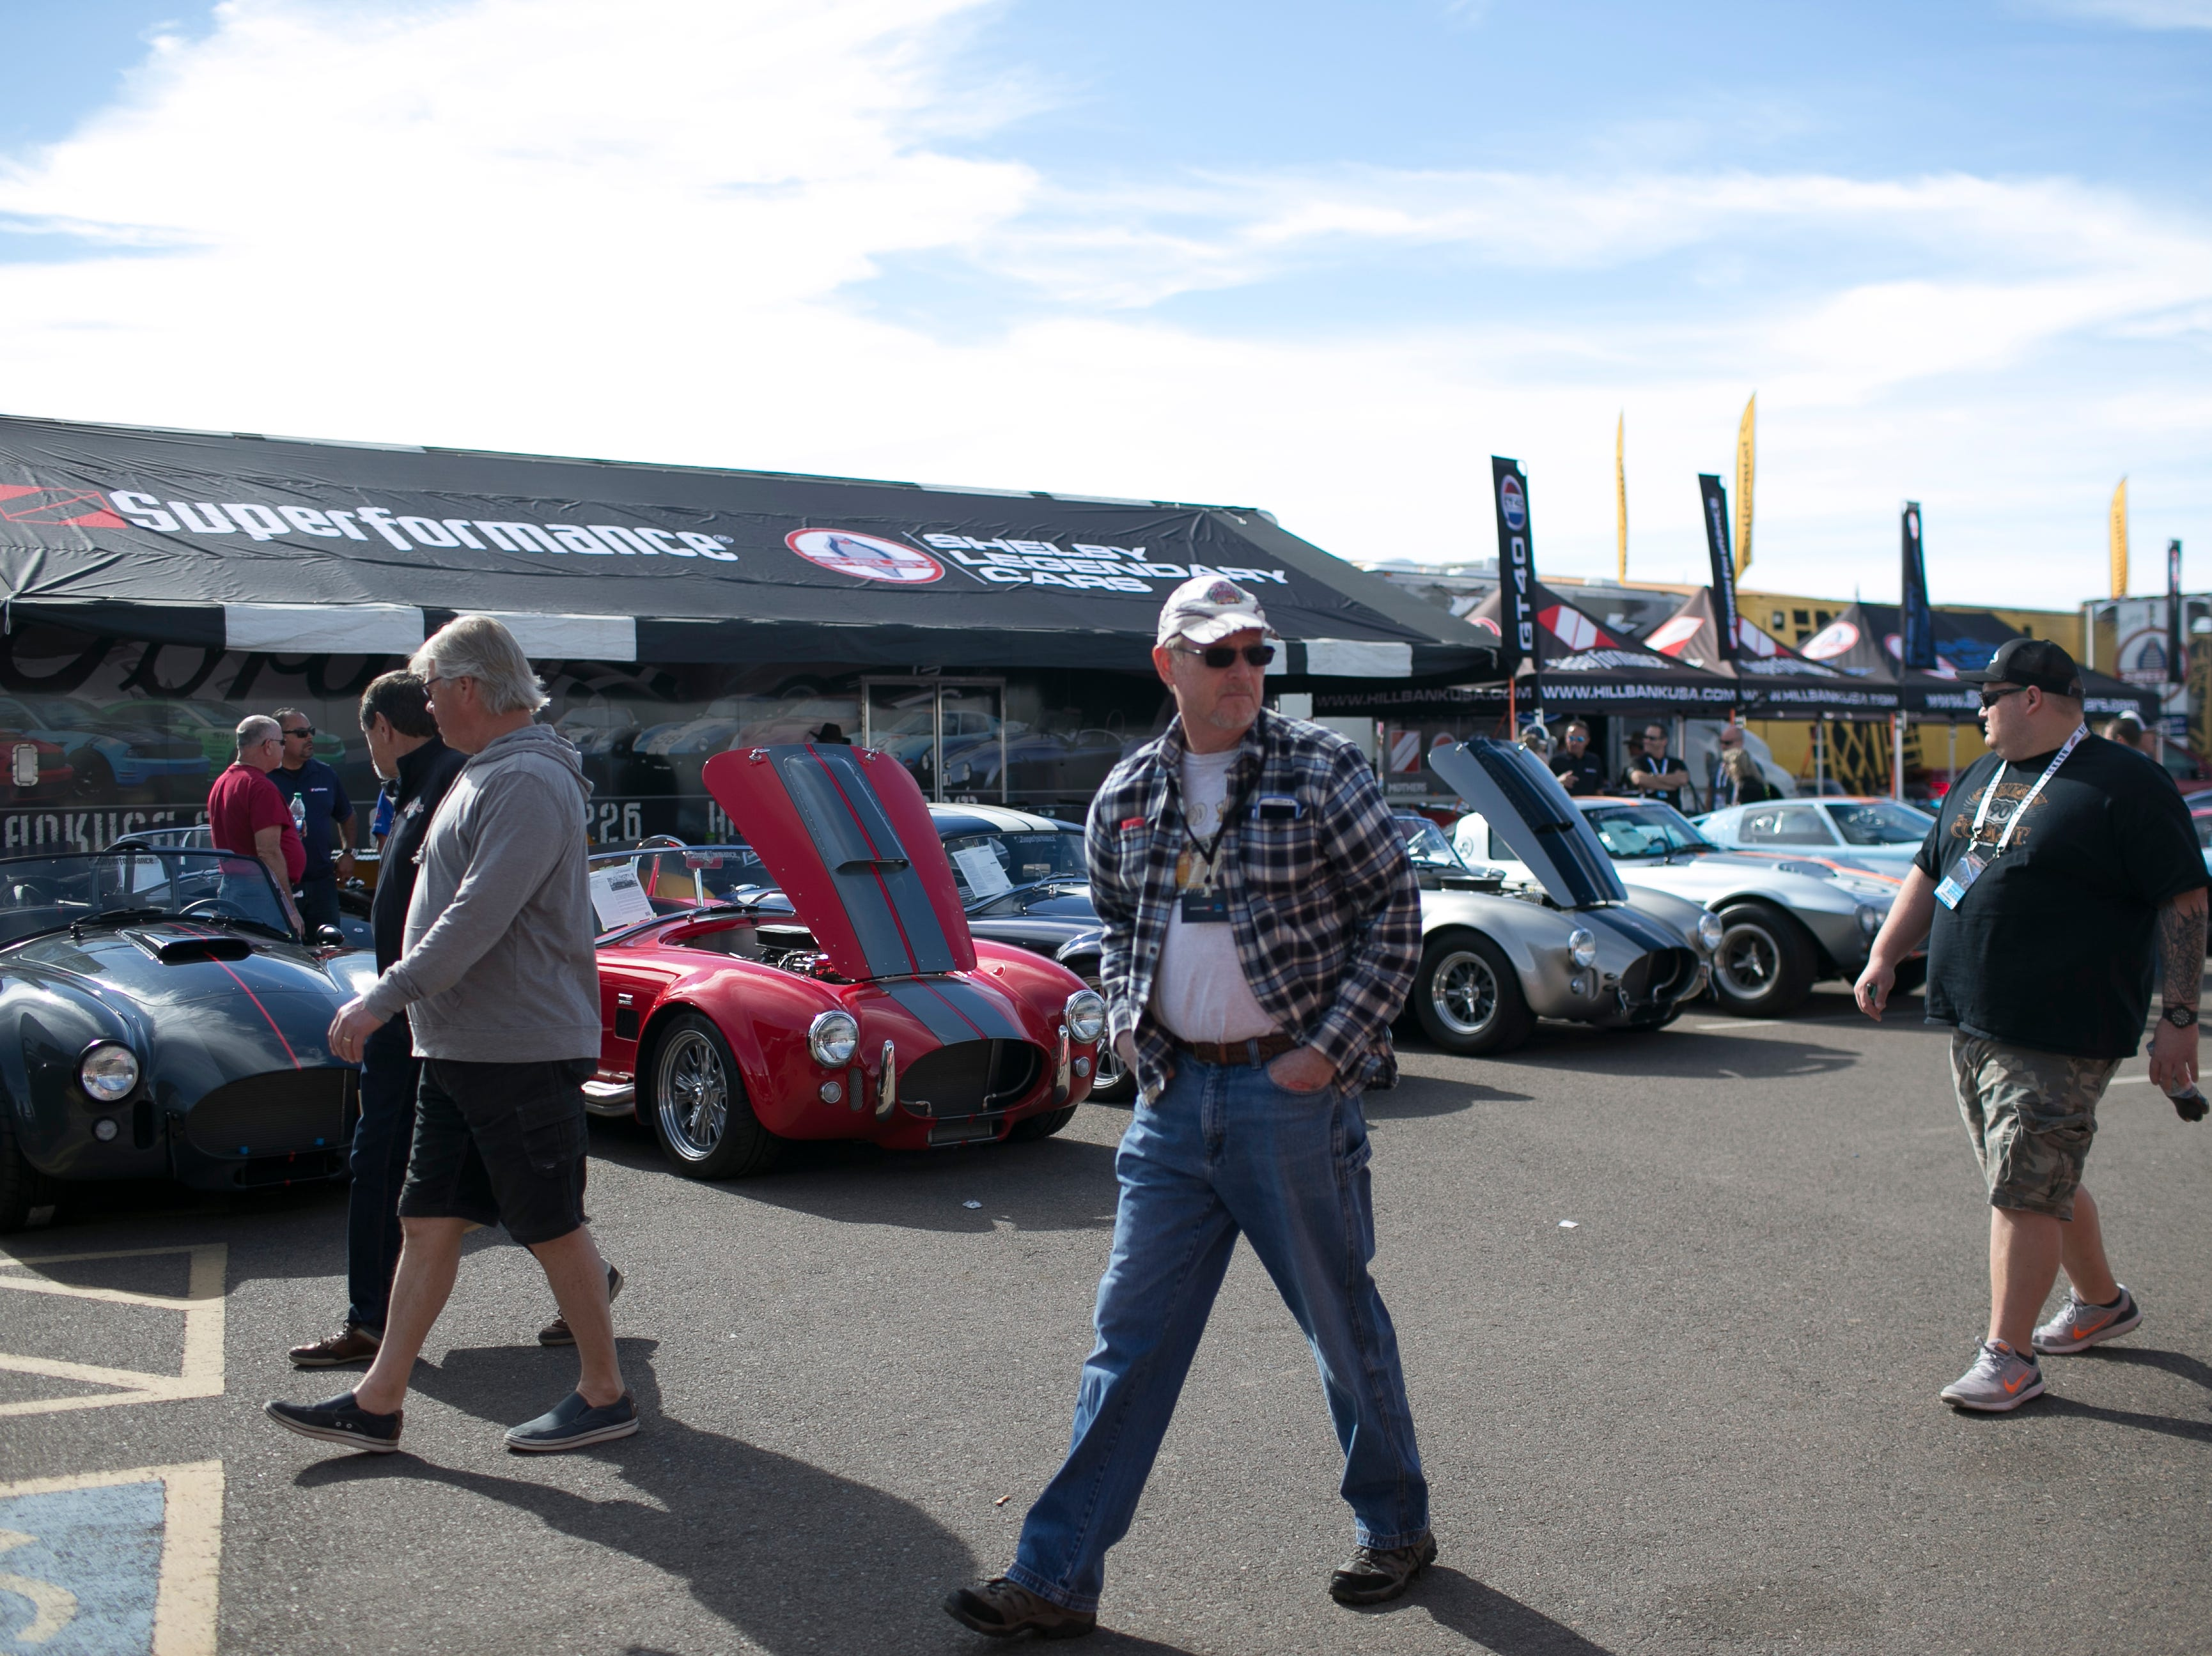 Visitors walk pasts rows of classic cars at Barrett-Jackson collector-car auction at WestWorld on Sat. January 19, 2019 in Scottsdale, Ariz.